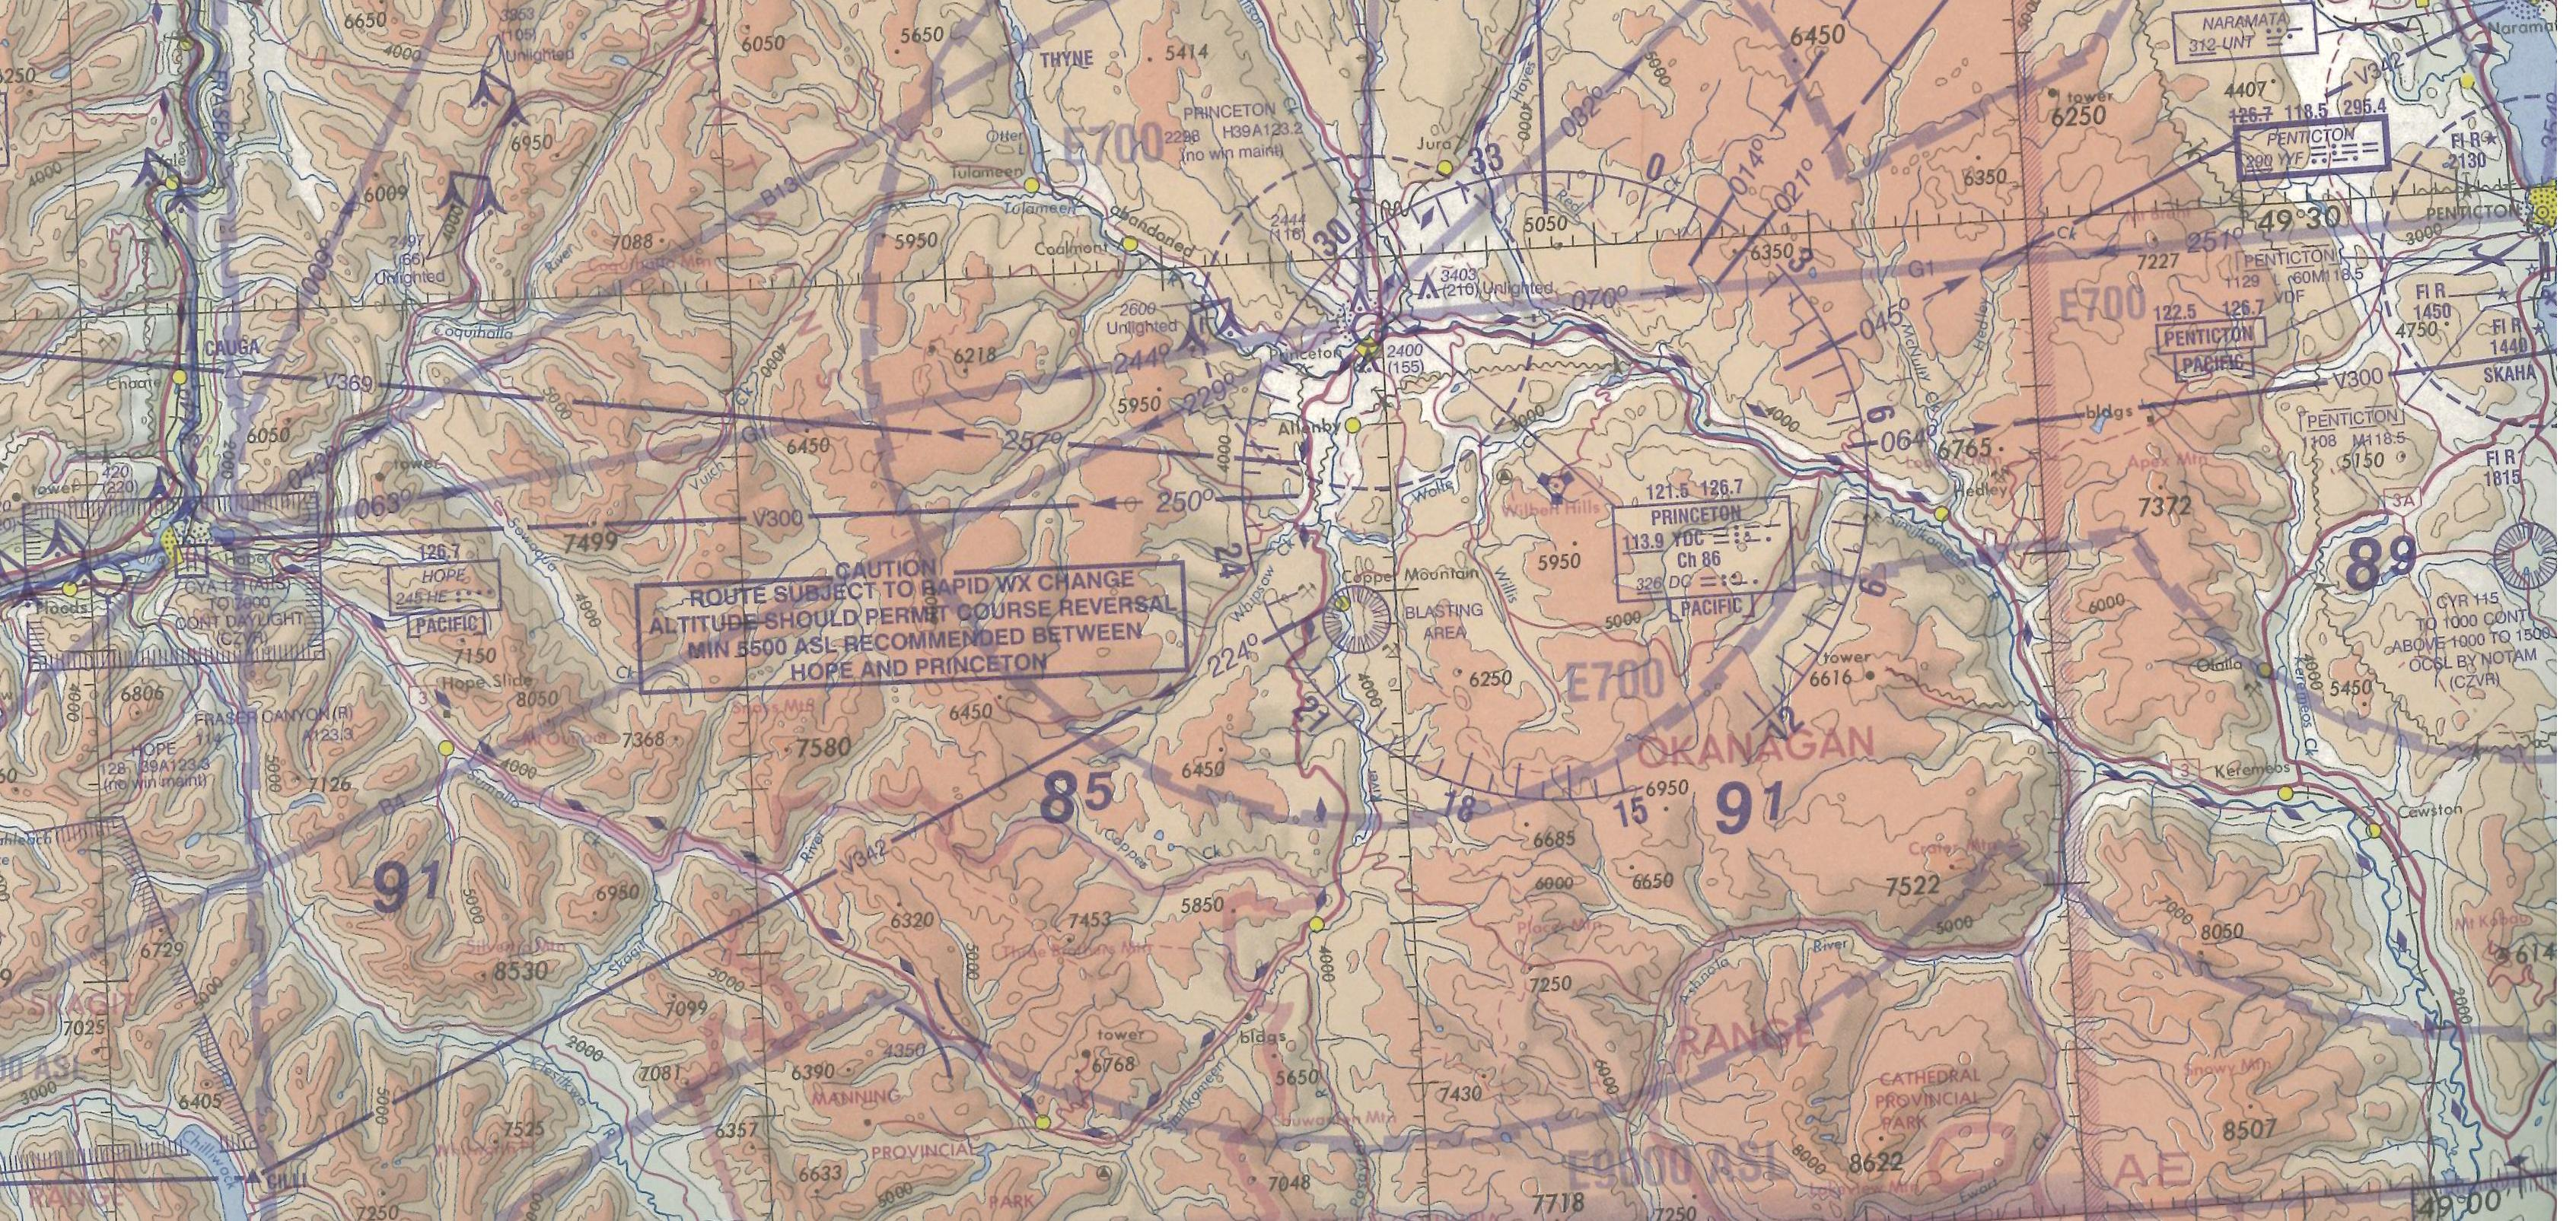 Map Room, Hope--Princeton Rout (Hwy #3), Langley Flying School